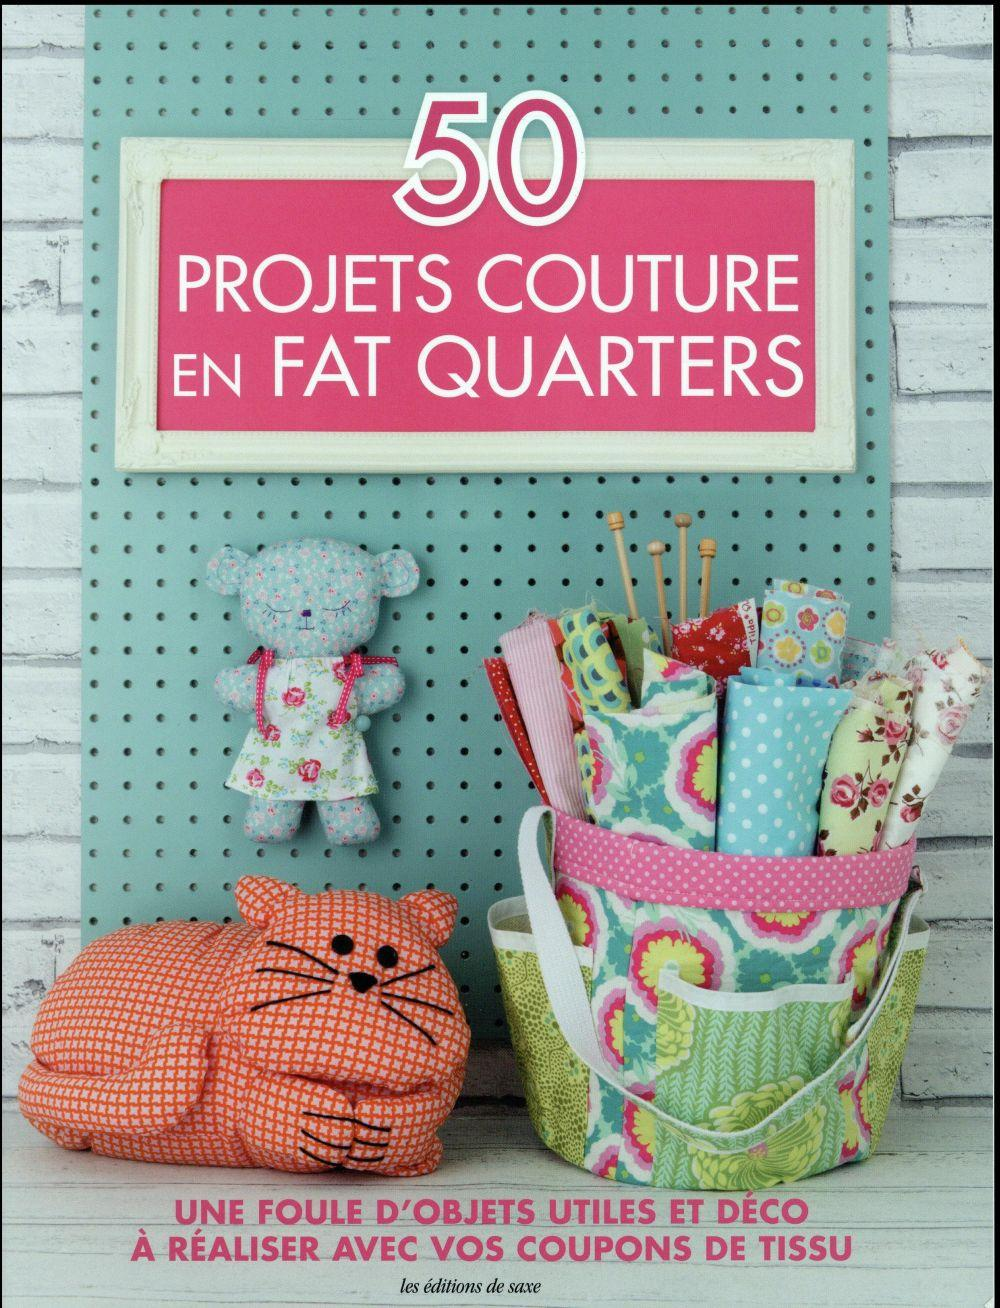 50 projets de couture en fat quarters  - Collectif